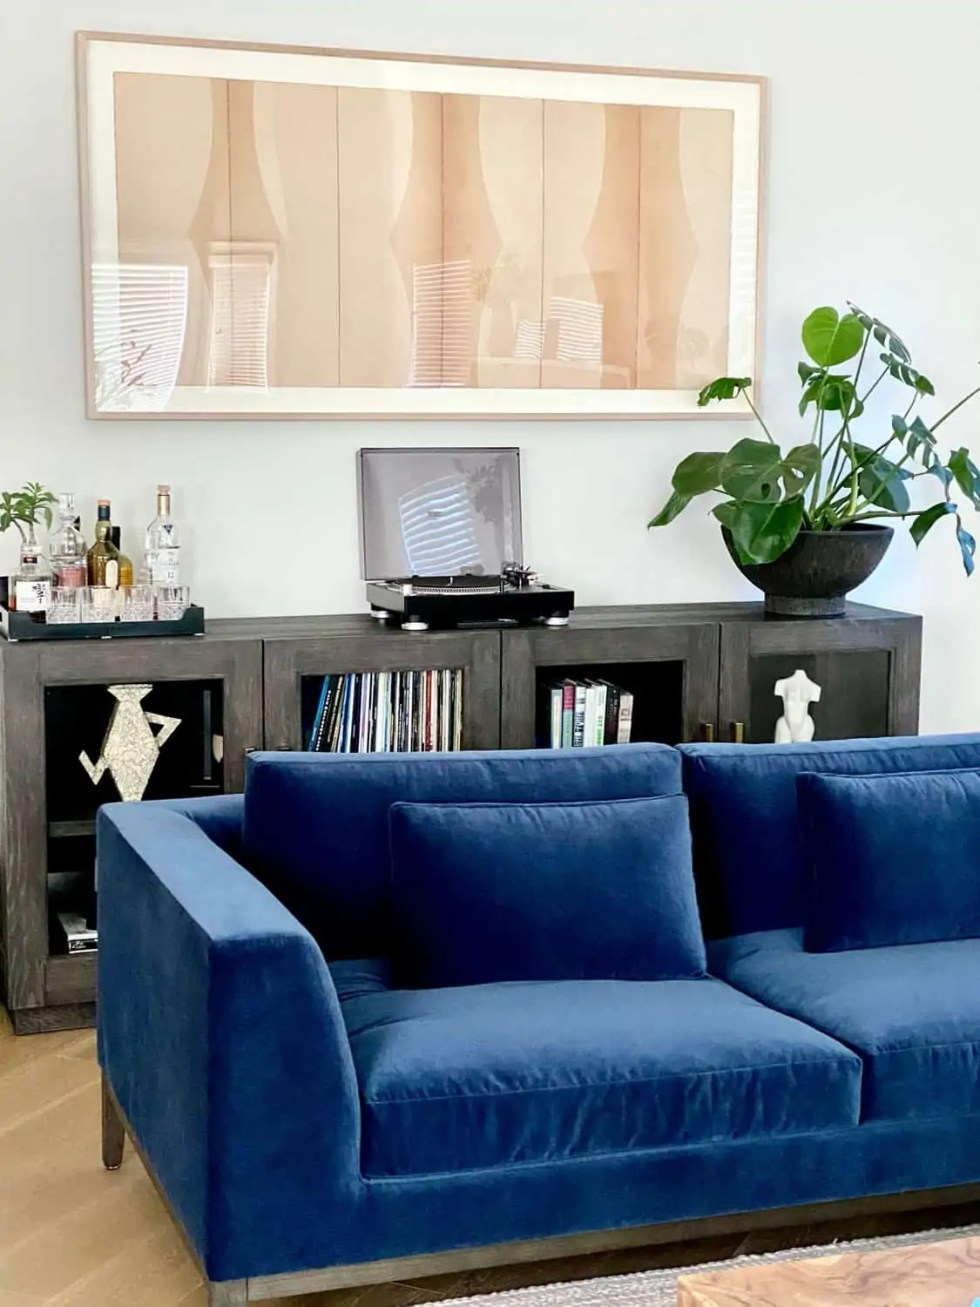 Decorating Modern Traditional Living Room With a Blue Velvet Sofa